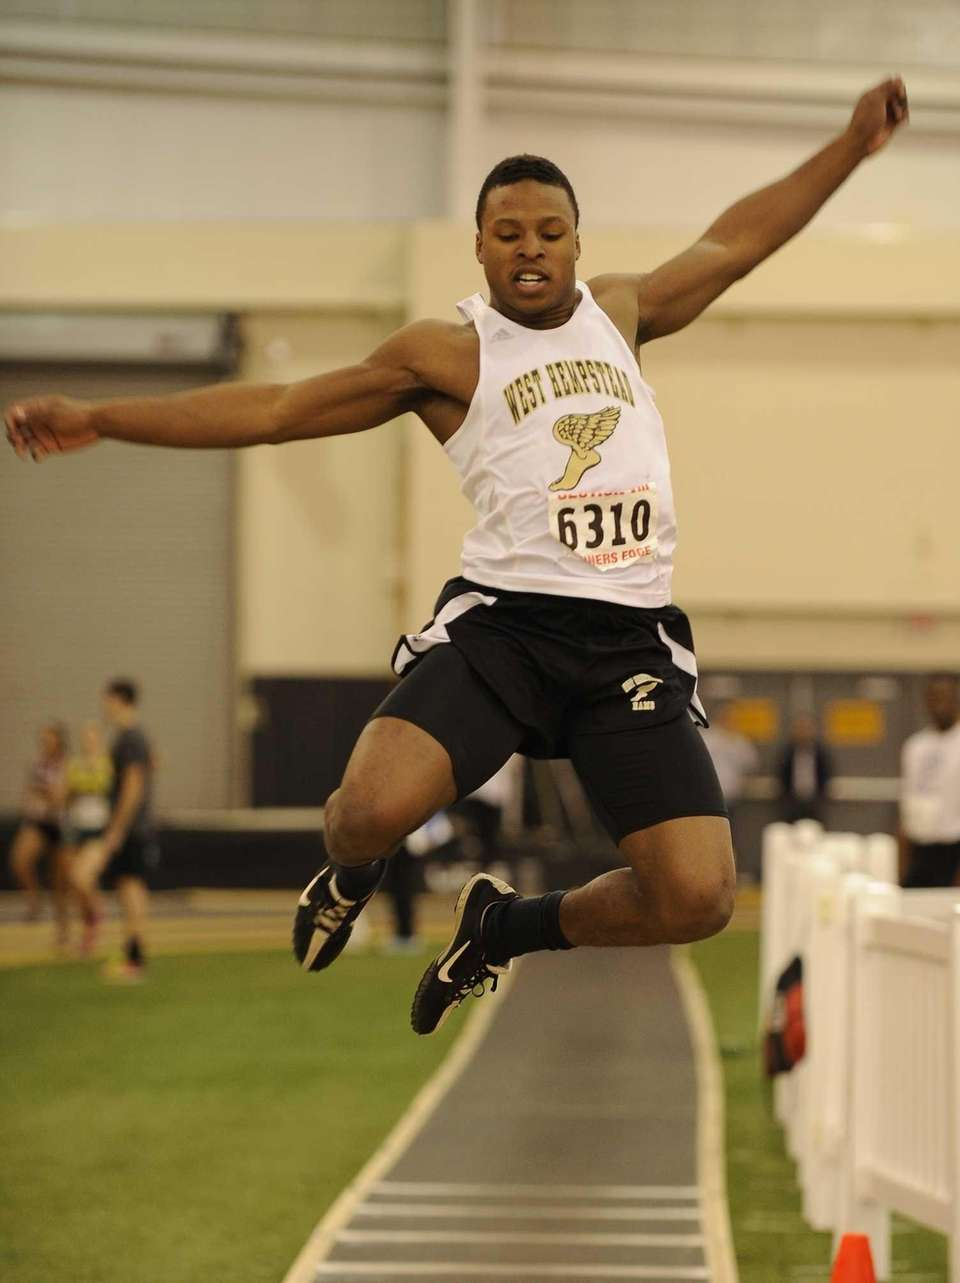 West Hempstead's Tayvon Hall competes in the long